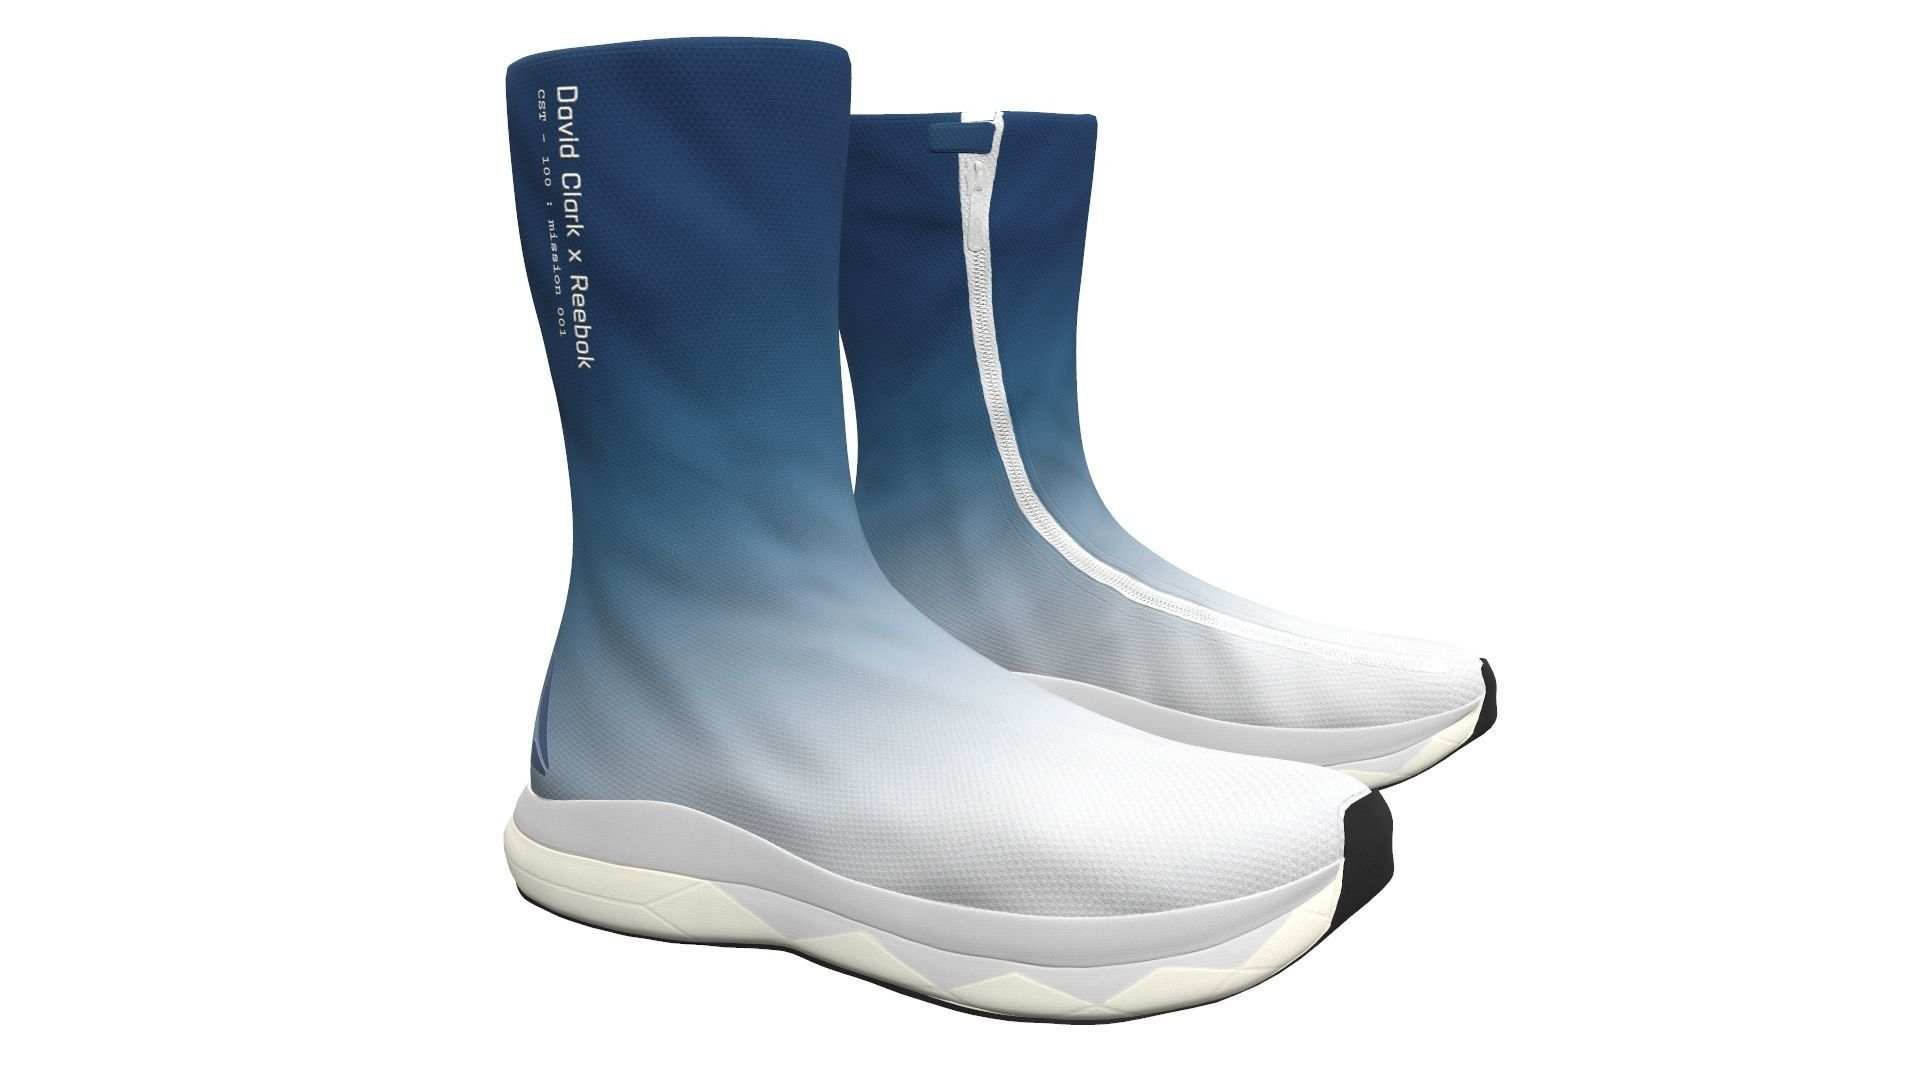 Space Boots for Astronauts